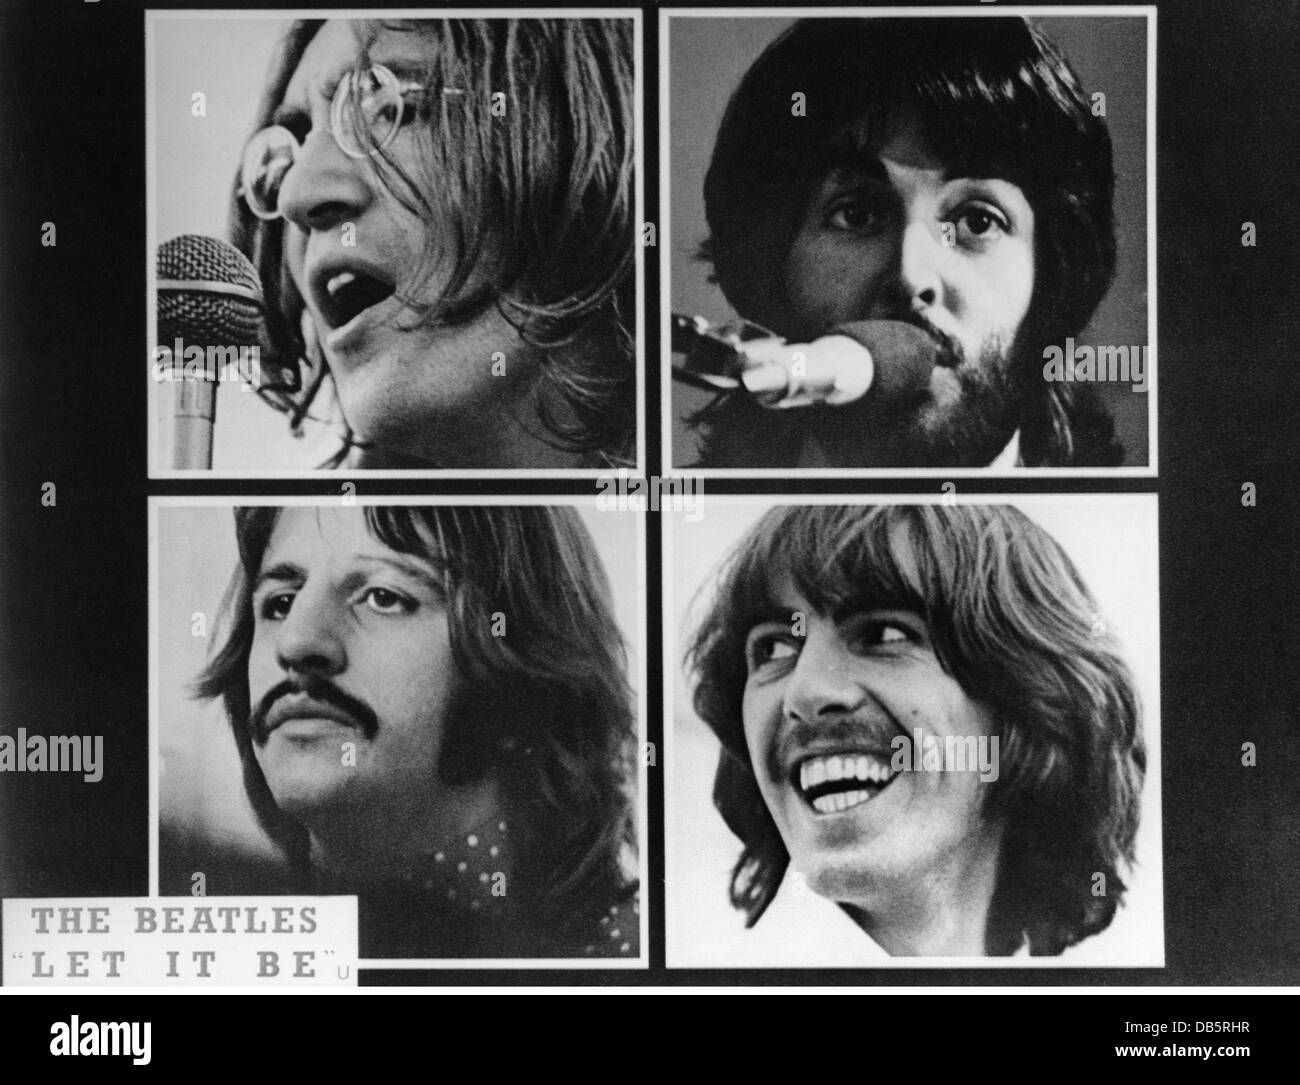 movie, 'Let it be', GBR 1969, director: Michael Lindsay-Hogg, scene with: The Beatles, music rehearse in - Stock Image